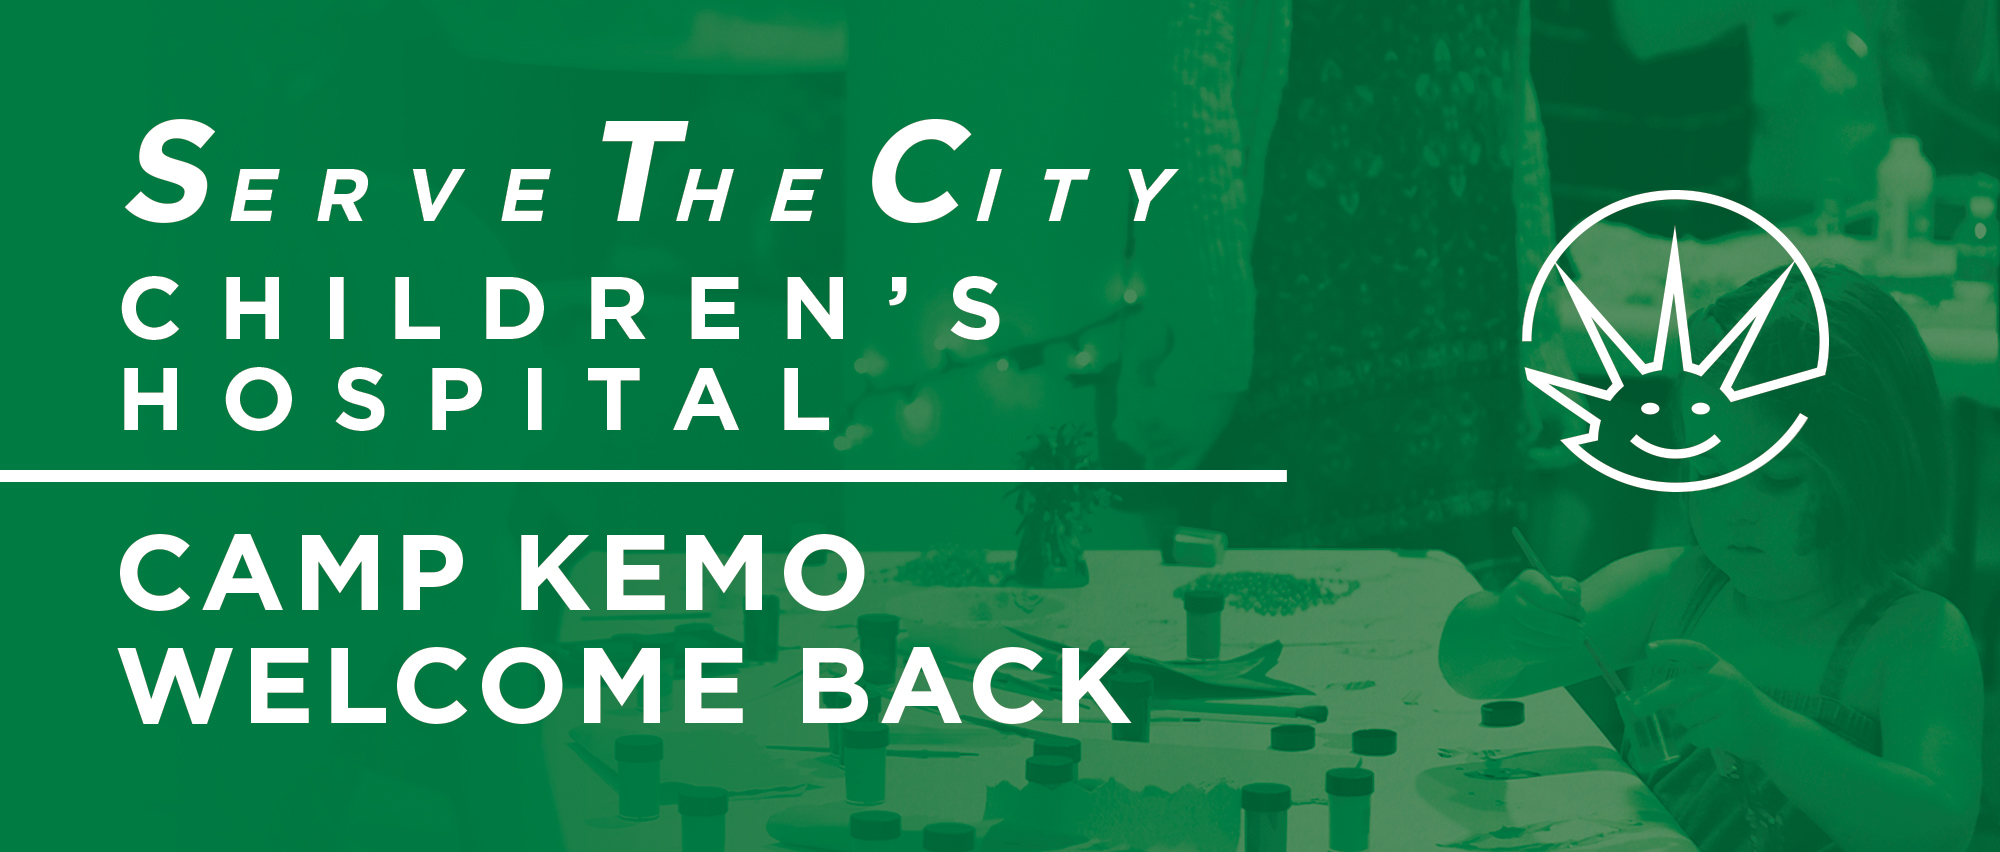 Join us for our Camp Kemo Welcome Back party as we help families unload their bags as they return from a week at Camp Kemo.